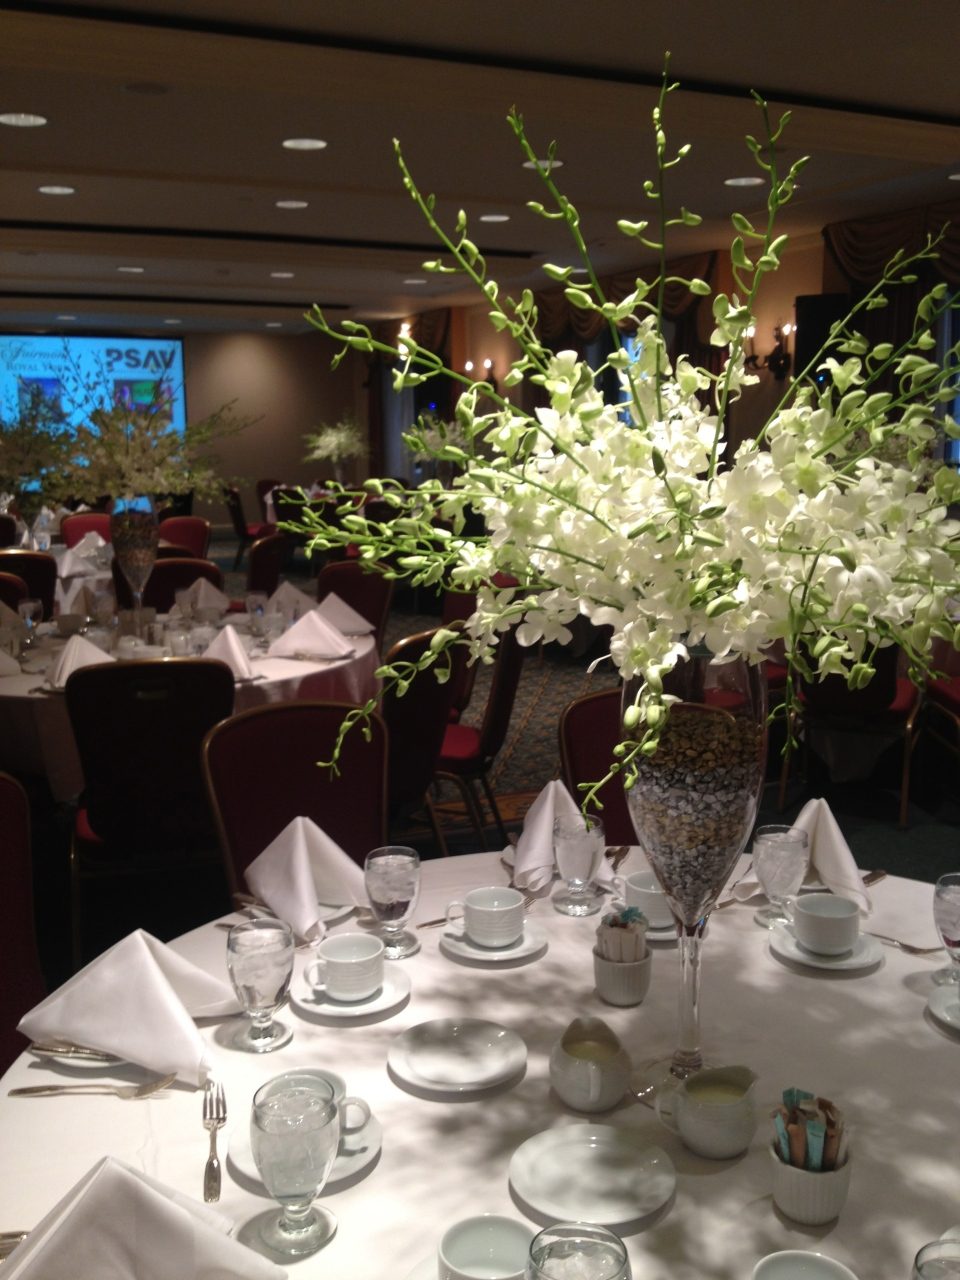 Tall centerpieces of white dendrobium orchids